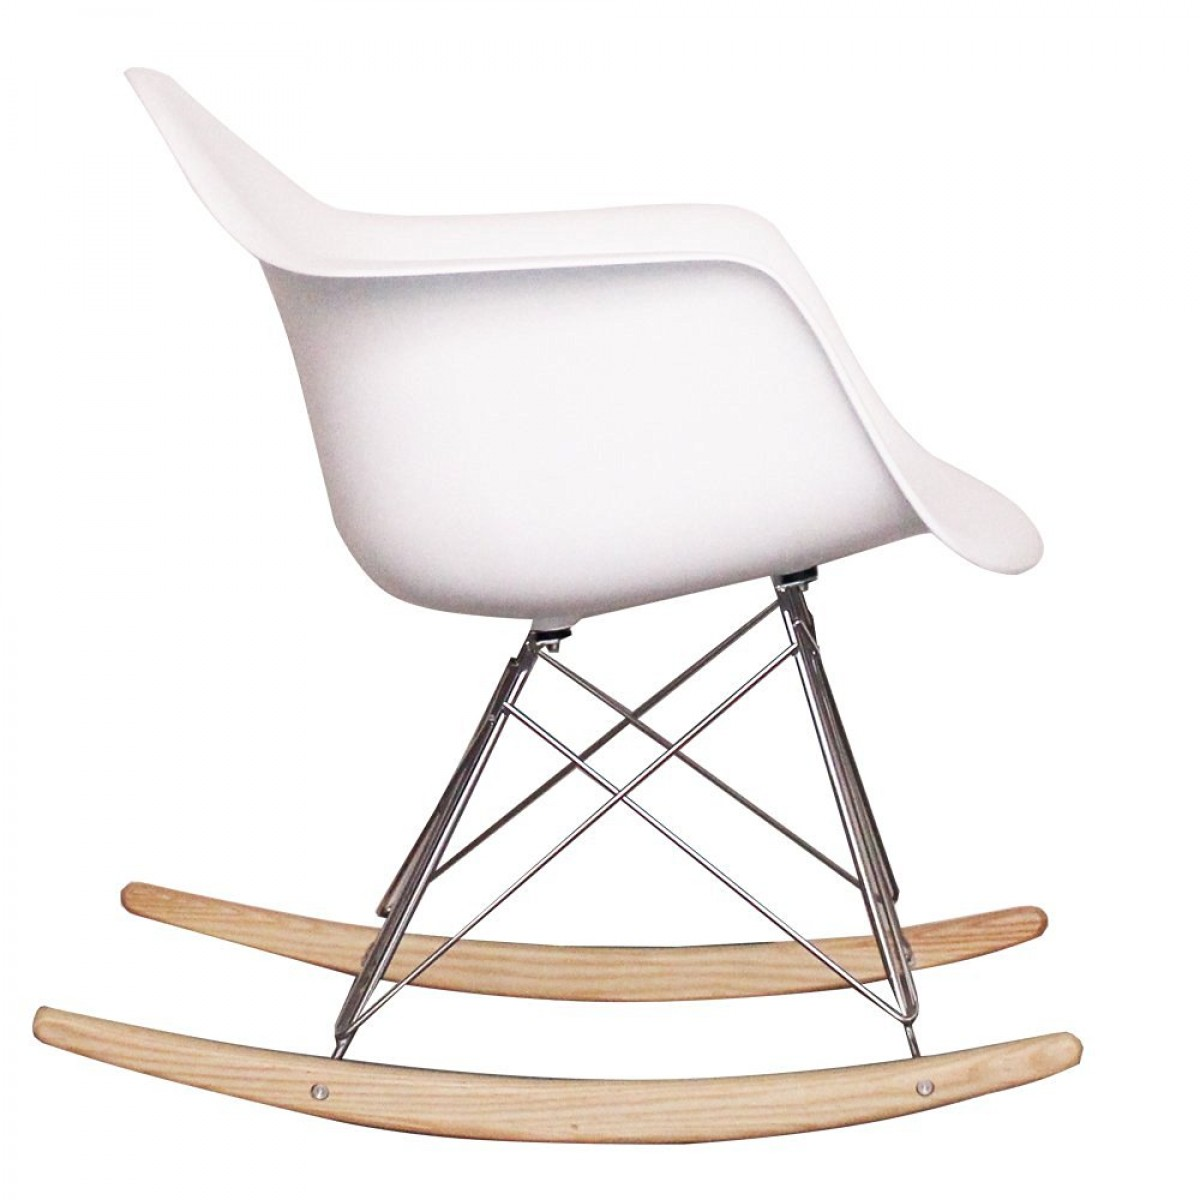 Eames style dining rocking rar arm chair white - Chaise eames belgique ...